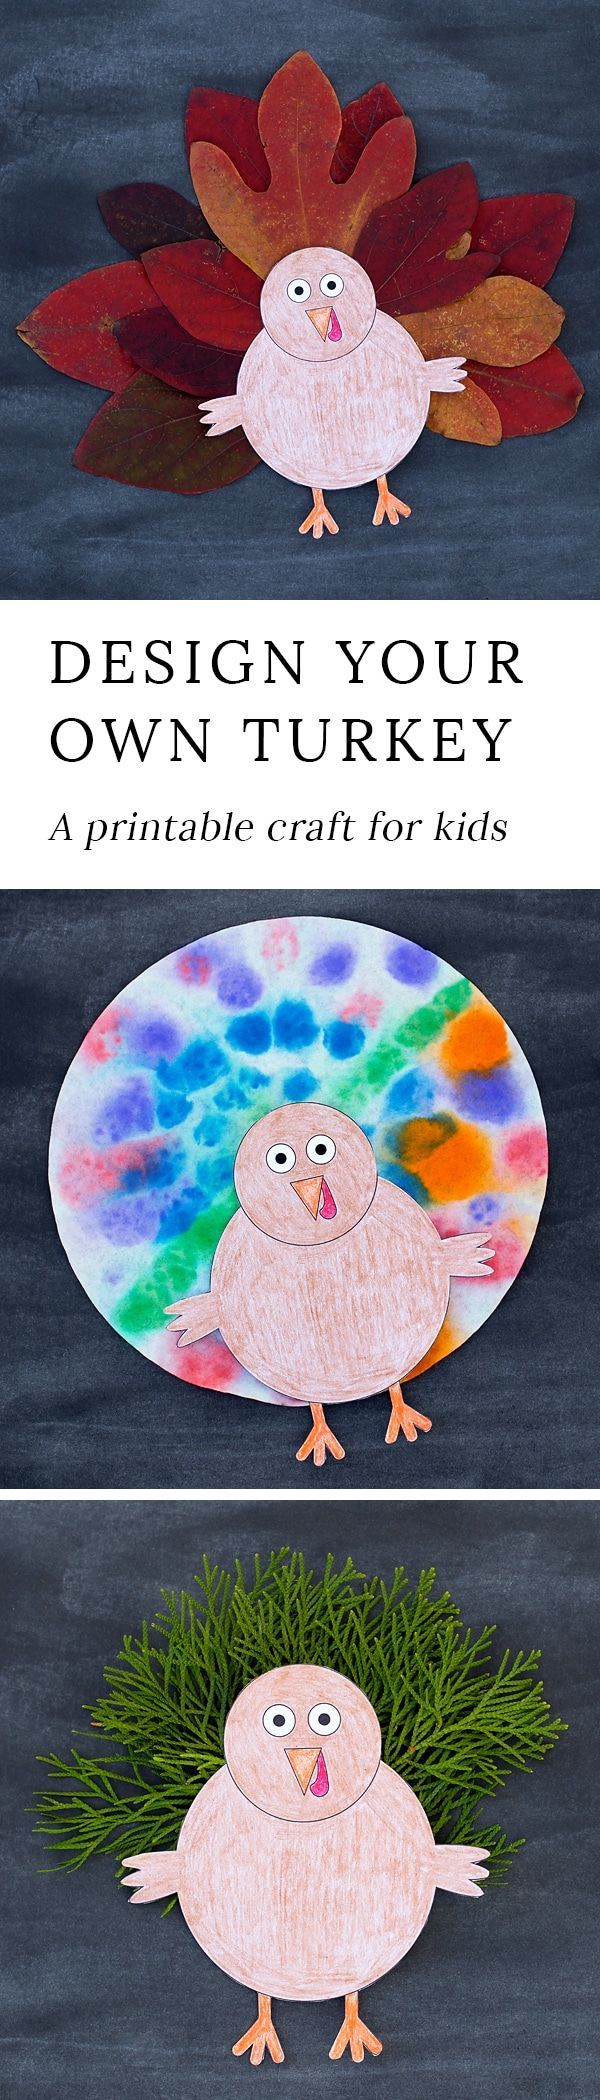 Design Your Own Thanksgiving Turkey Craft for Kids - Fireflies and Mud Pies -